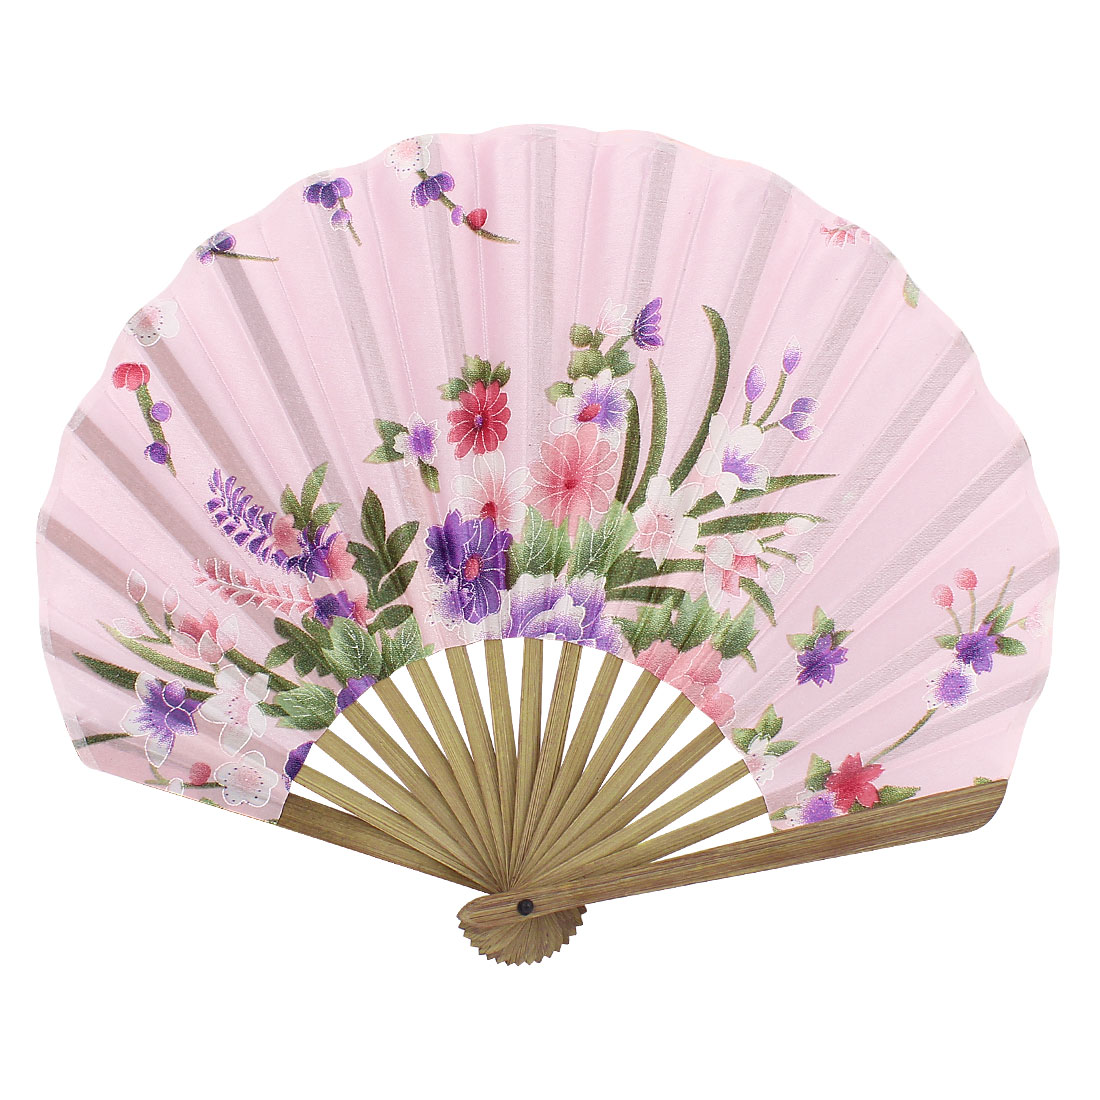 Party Decor Bamboo Ribs Fabric Blooming Floral Pattern Folding Hand Fan Pink